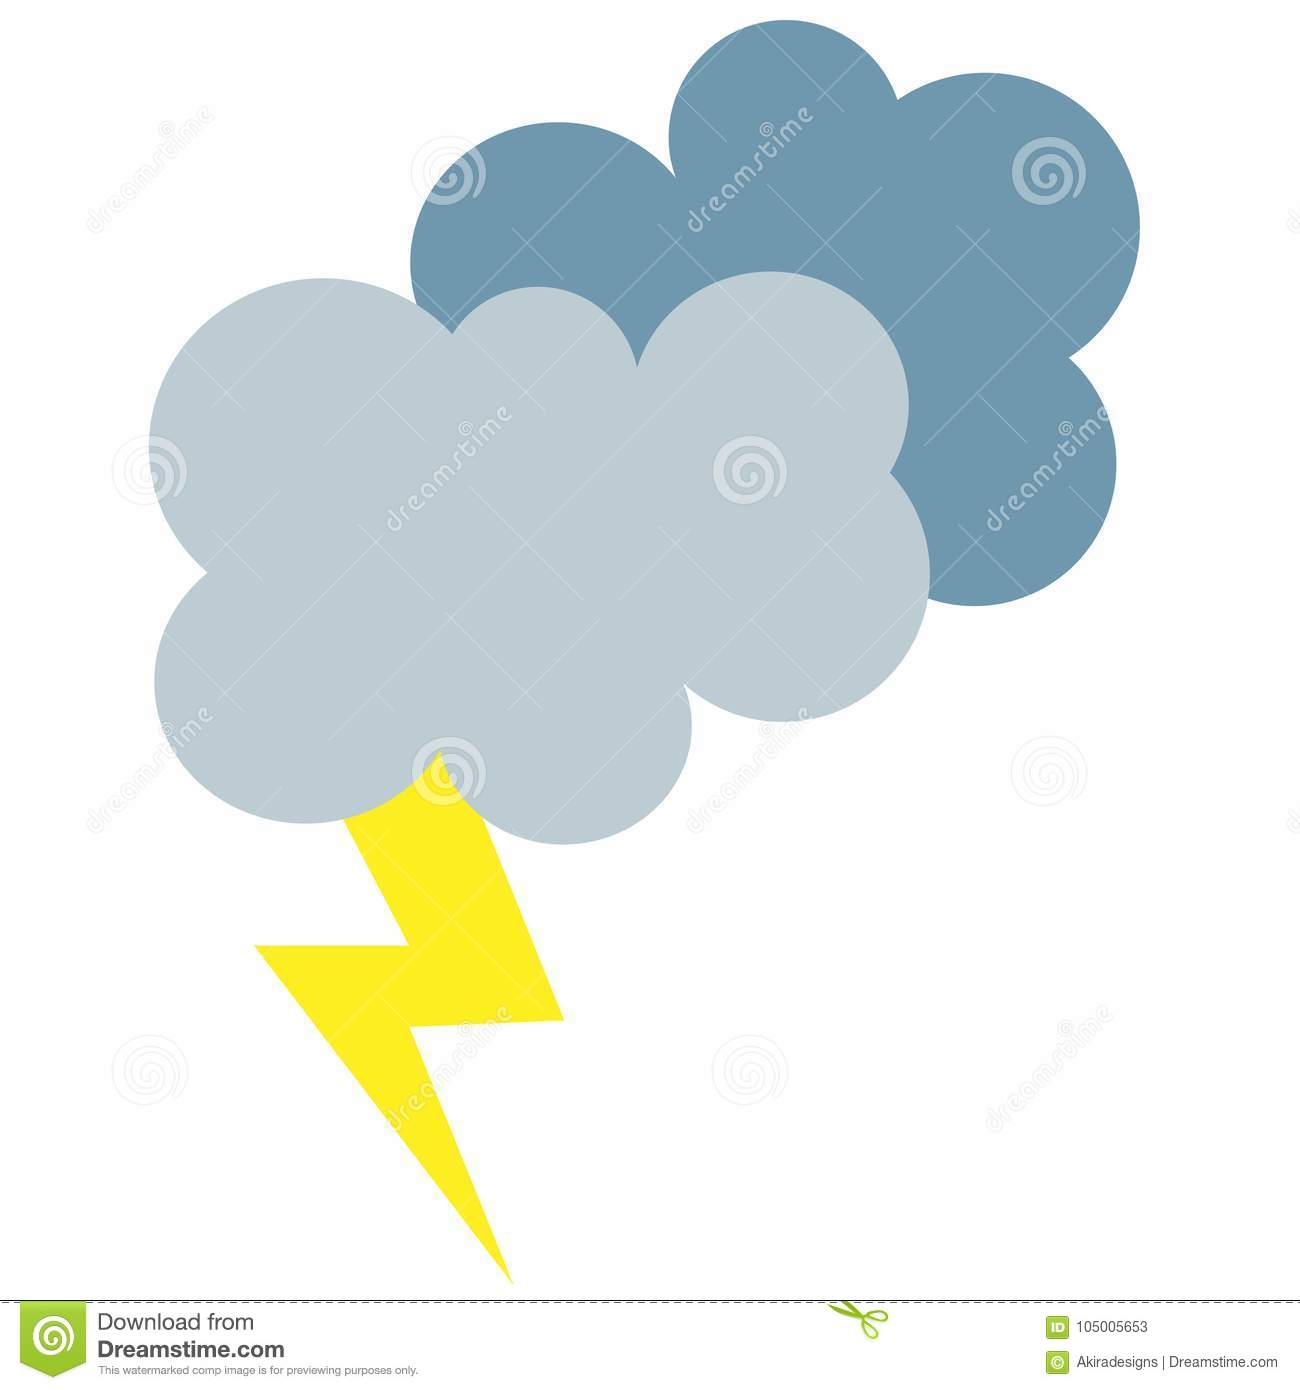 hight resolution of simple cartoon illustration of storm lightning weather forecast simple symbol or clipart